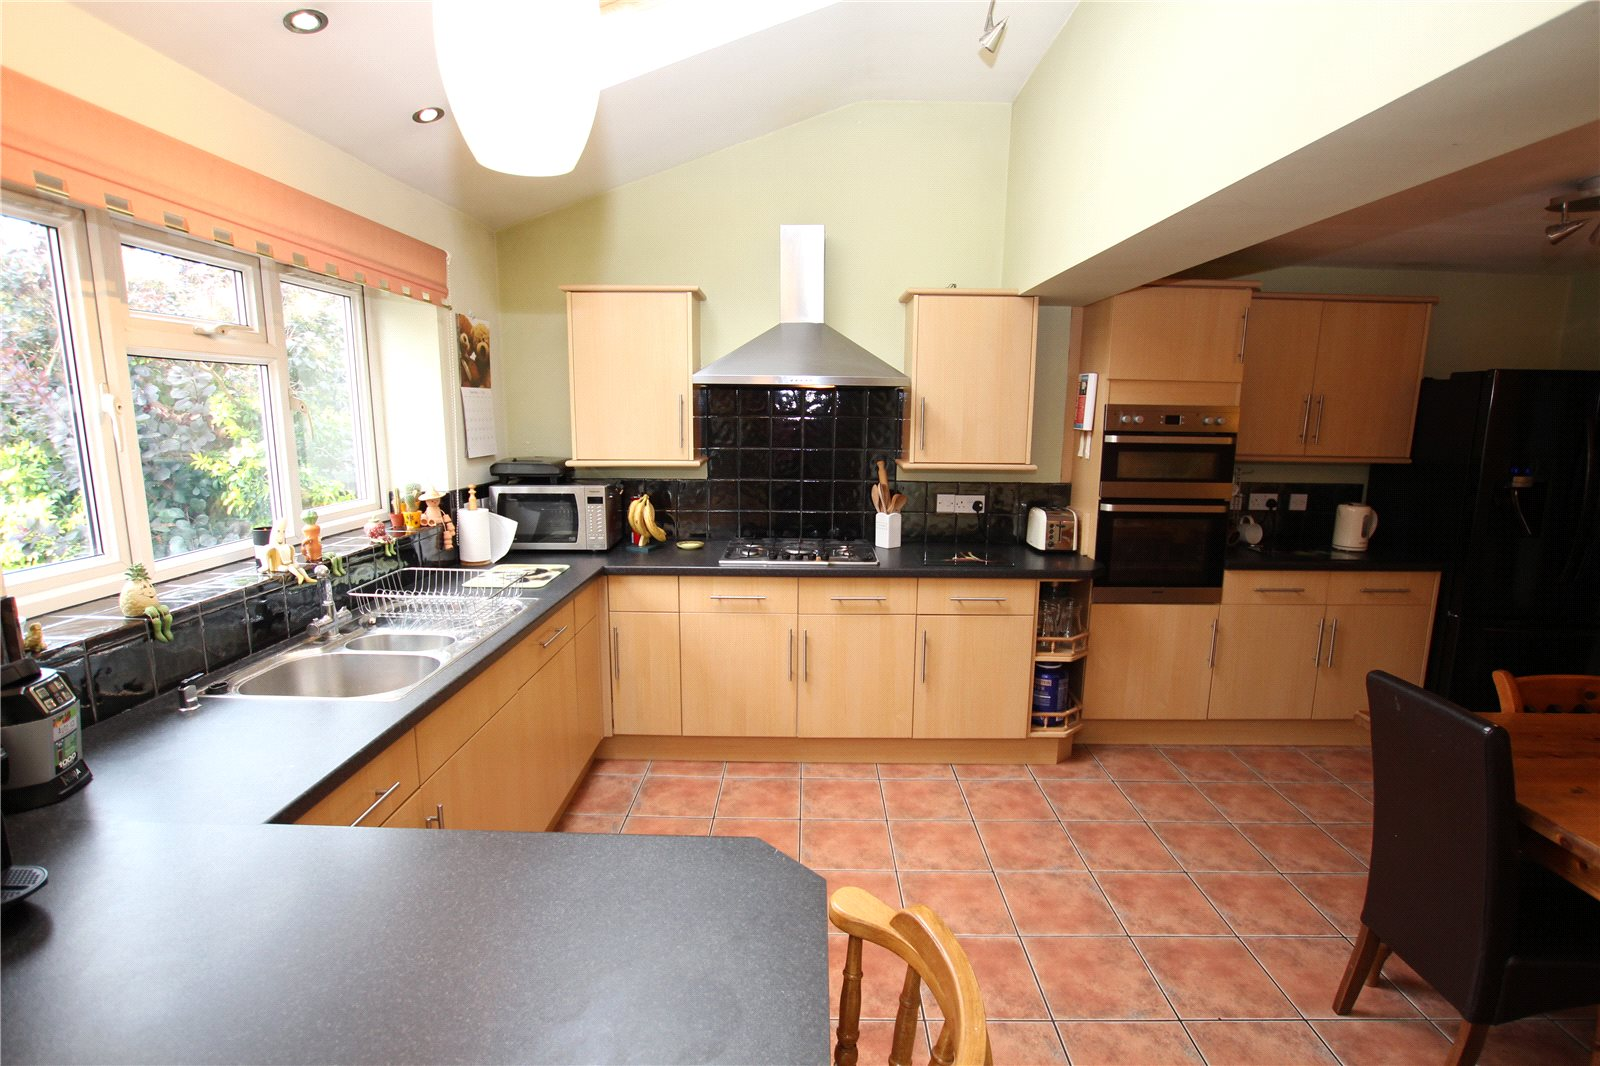 Cj Hole Gloucester 4 Bedroom House For Sale In Chosen Way